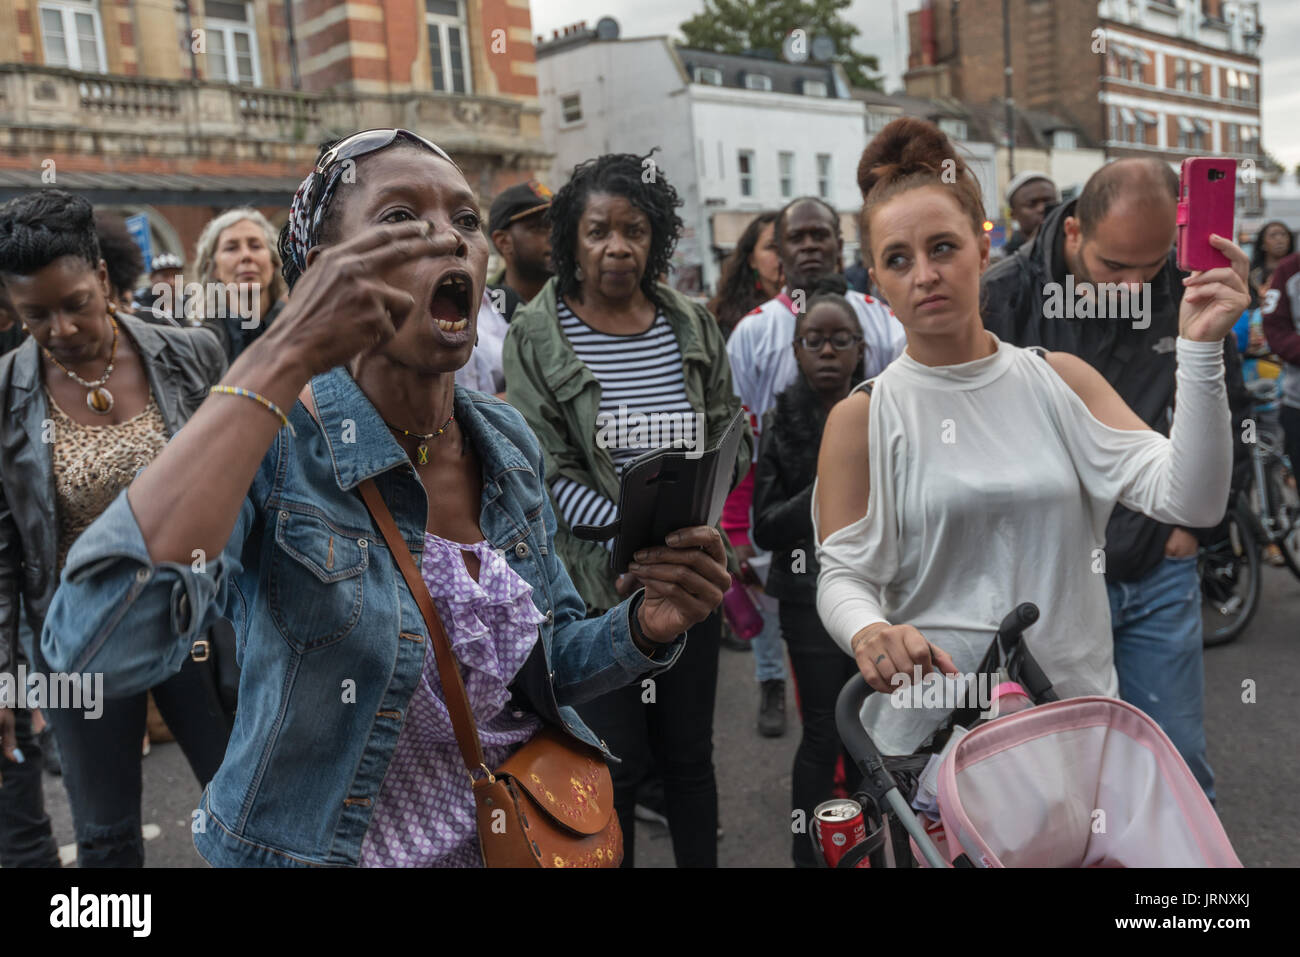 London, UK. 4th Aug, 2017. London, UK. 4th August 2017. People in the crowd react to the speaker from the Justice for Grenfell campaign, echoing his call for action from the community at the rally at Tottenham Police Station remembering the death of Mark Duggan on the sixth anniversary of his killing by police, and also the police killing of other members of the Tottenham community - Cynthia Jarrett, Joy Gardner, Roger Sylvester, Mark Duggan and Jermaine Baker and the recent murders of Rashan Charles, Darren Cumberbatch and Edson Da Costa. Led by Stafford Scott, there was poetry, a minute o - Stock Image